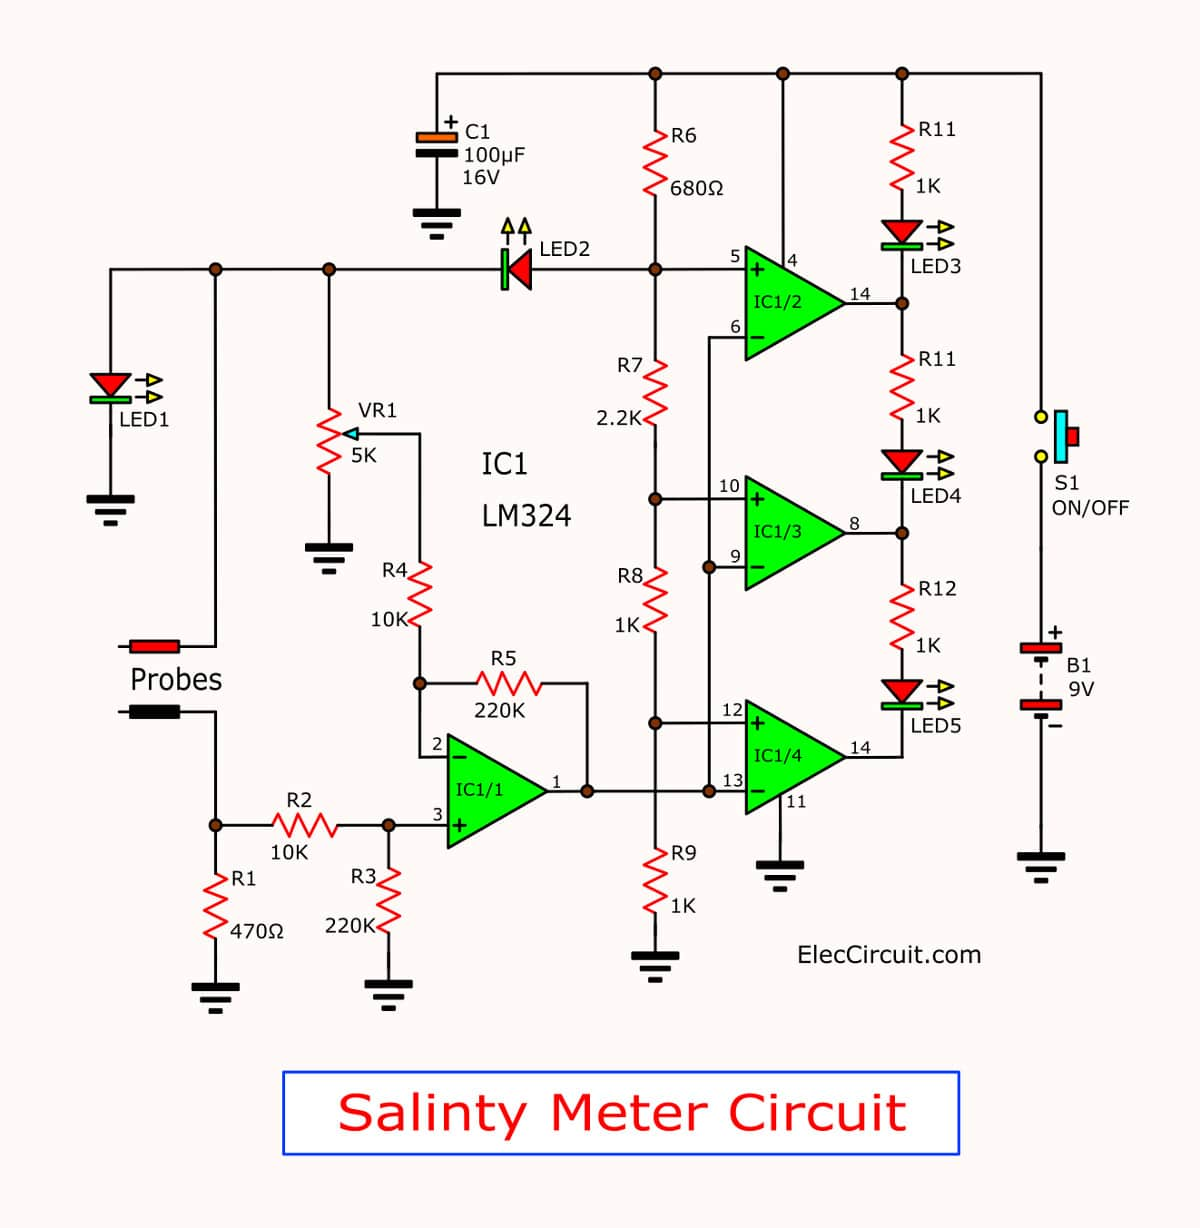 The Food Salt Salinity Tester Meter Circuit Water Level Indicator Electronic That Uses A 7segment Display